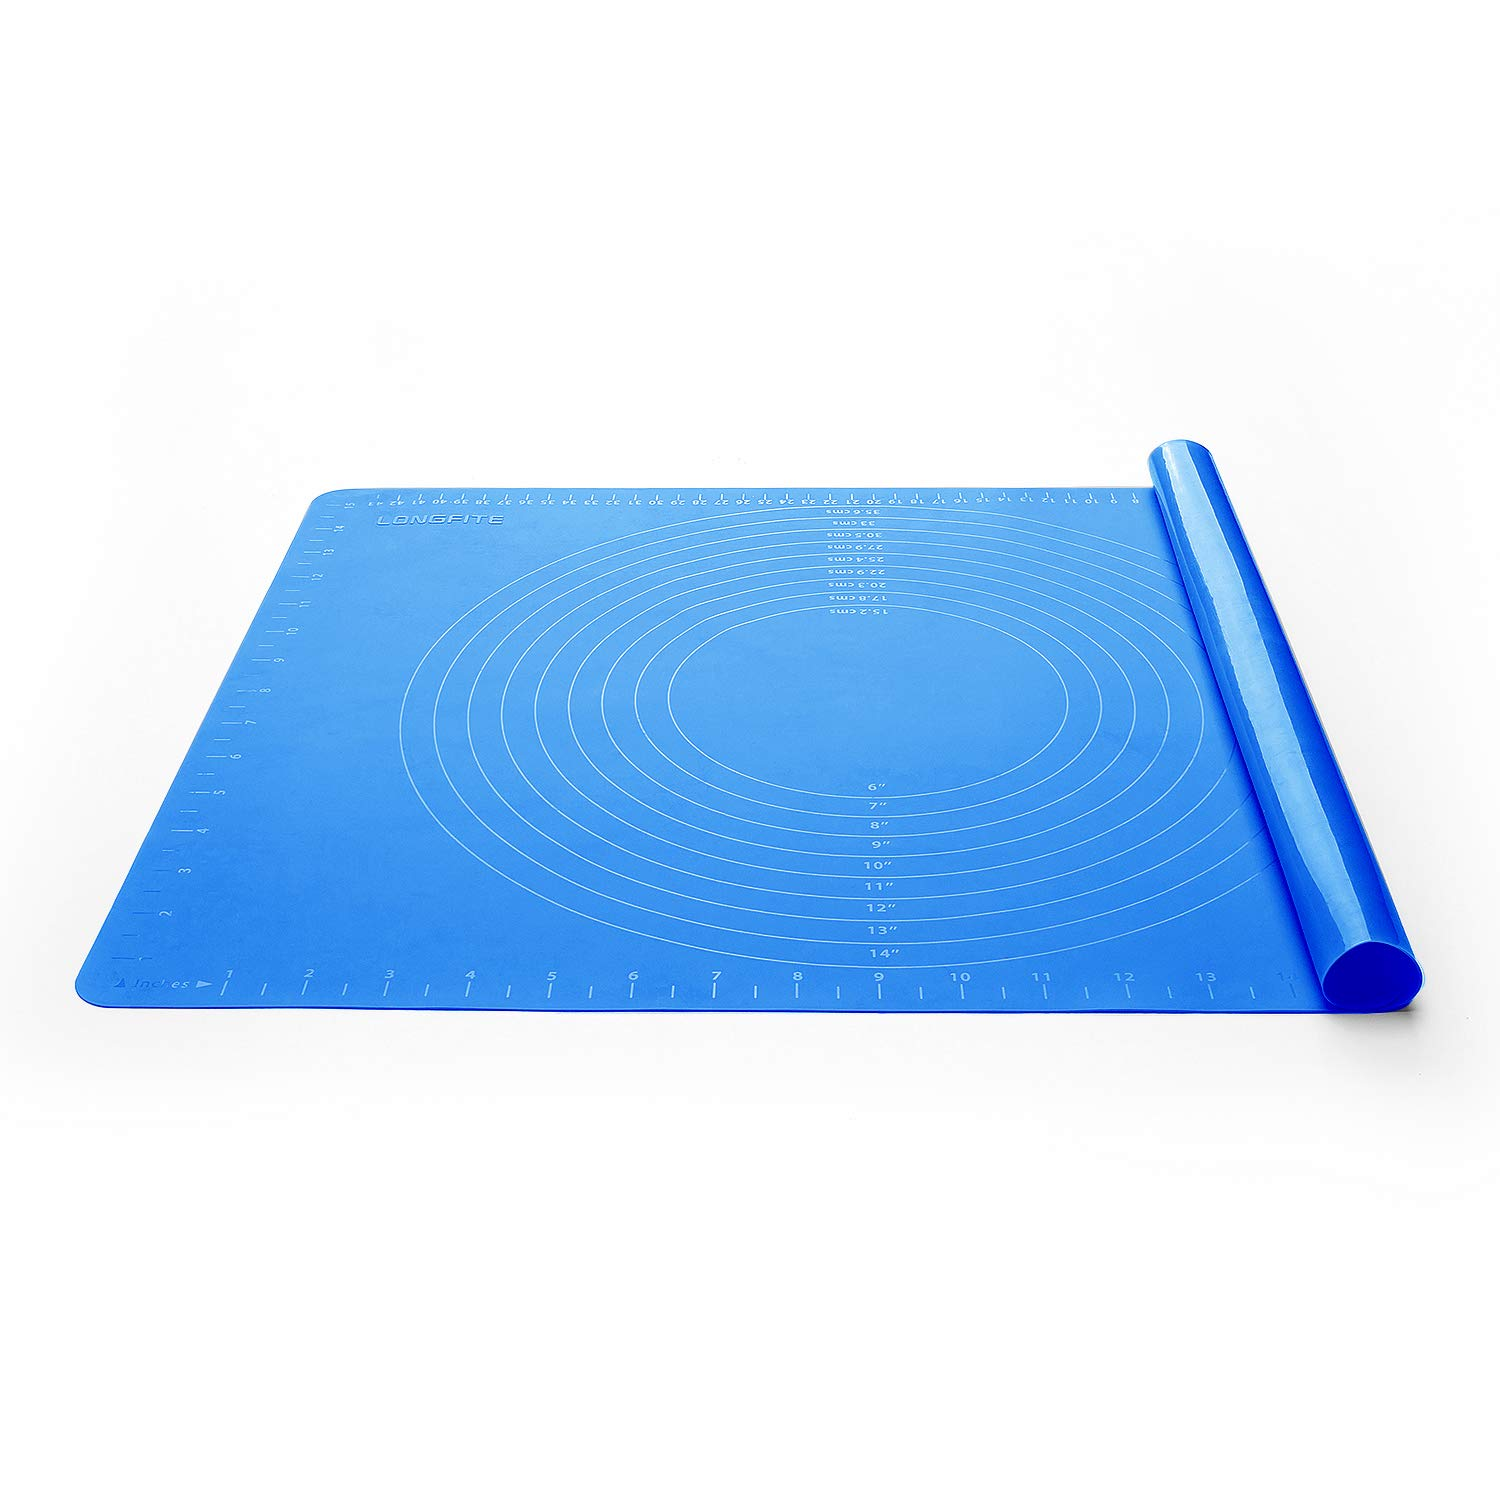 Silicone Baking Mat for Pastry Rolling Dough Mats Large Nonstick and Nonslip with Measurements,Dining Table Placemat 20'' by 16''(With Measurements, Blue)